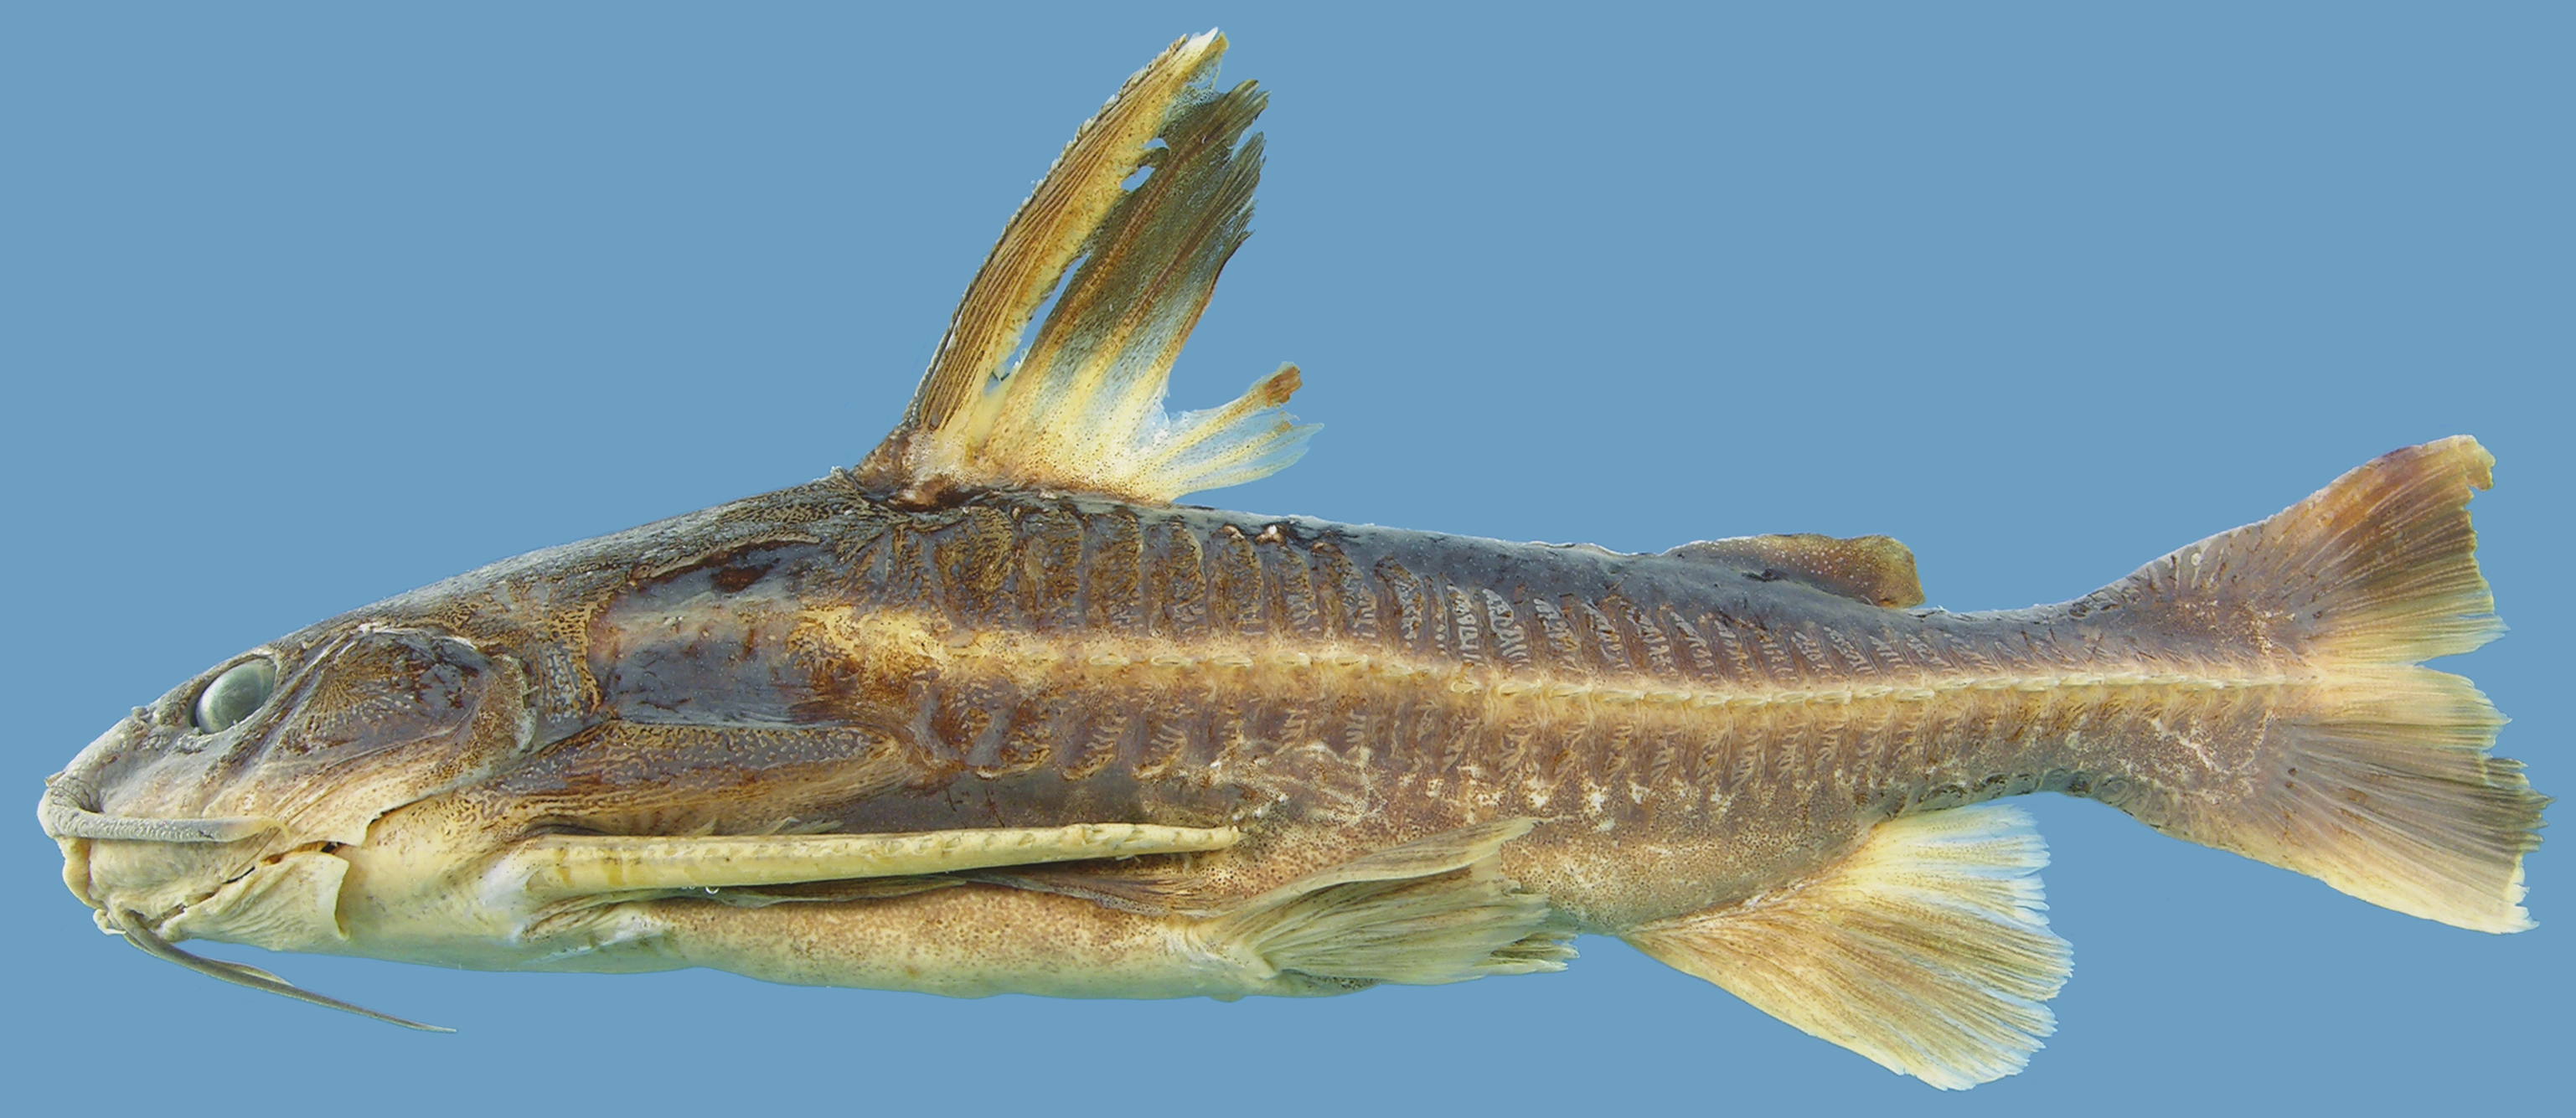 Here's a lateral view of the Platydoras, a genus of the thorny catfish. Arce Hernandez first became acquainted with this fish while working on her thesis in the Amazon.